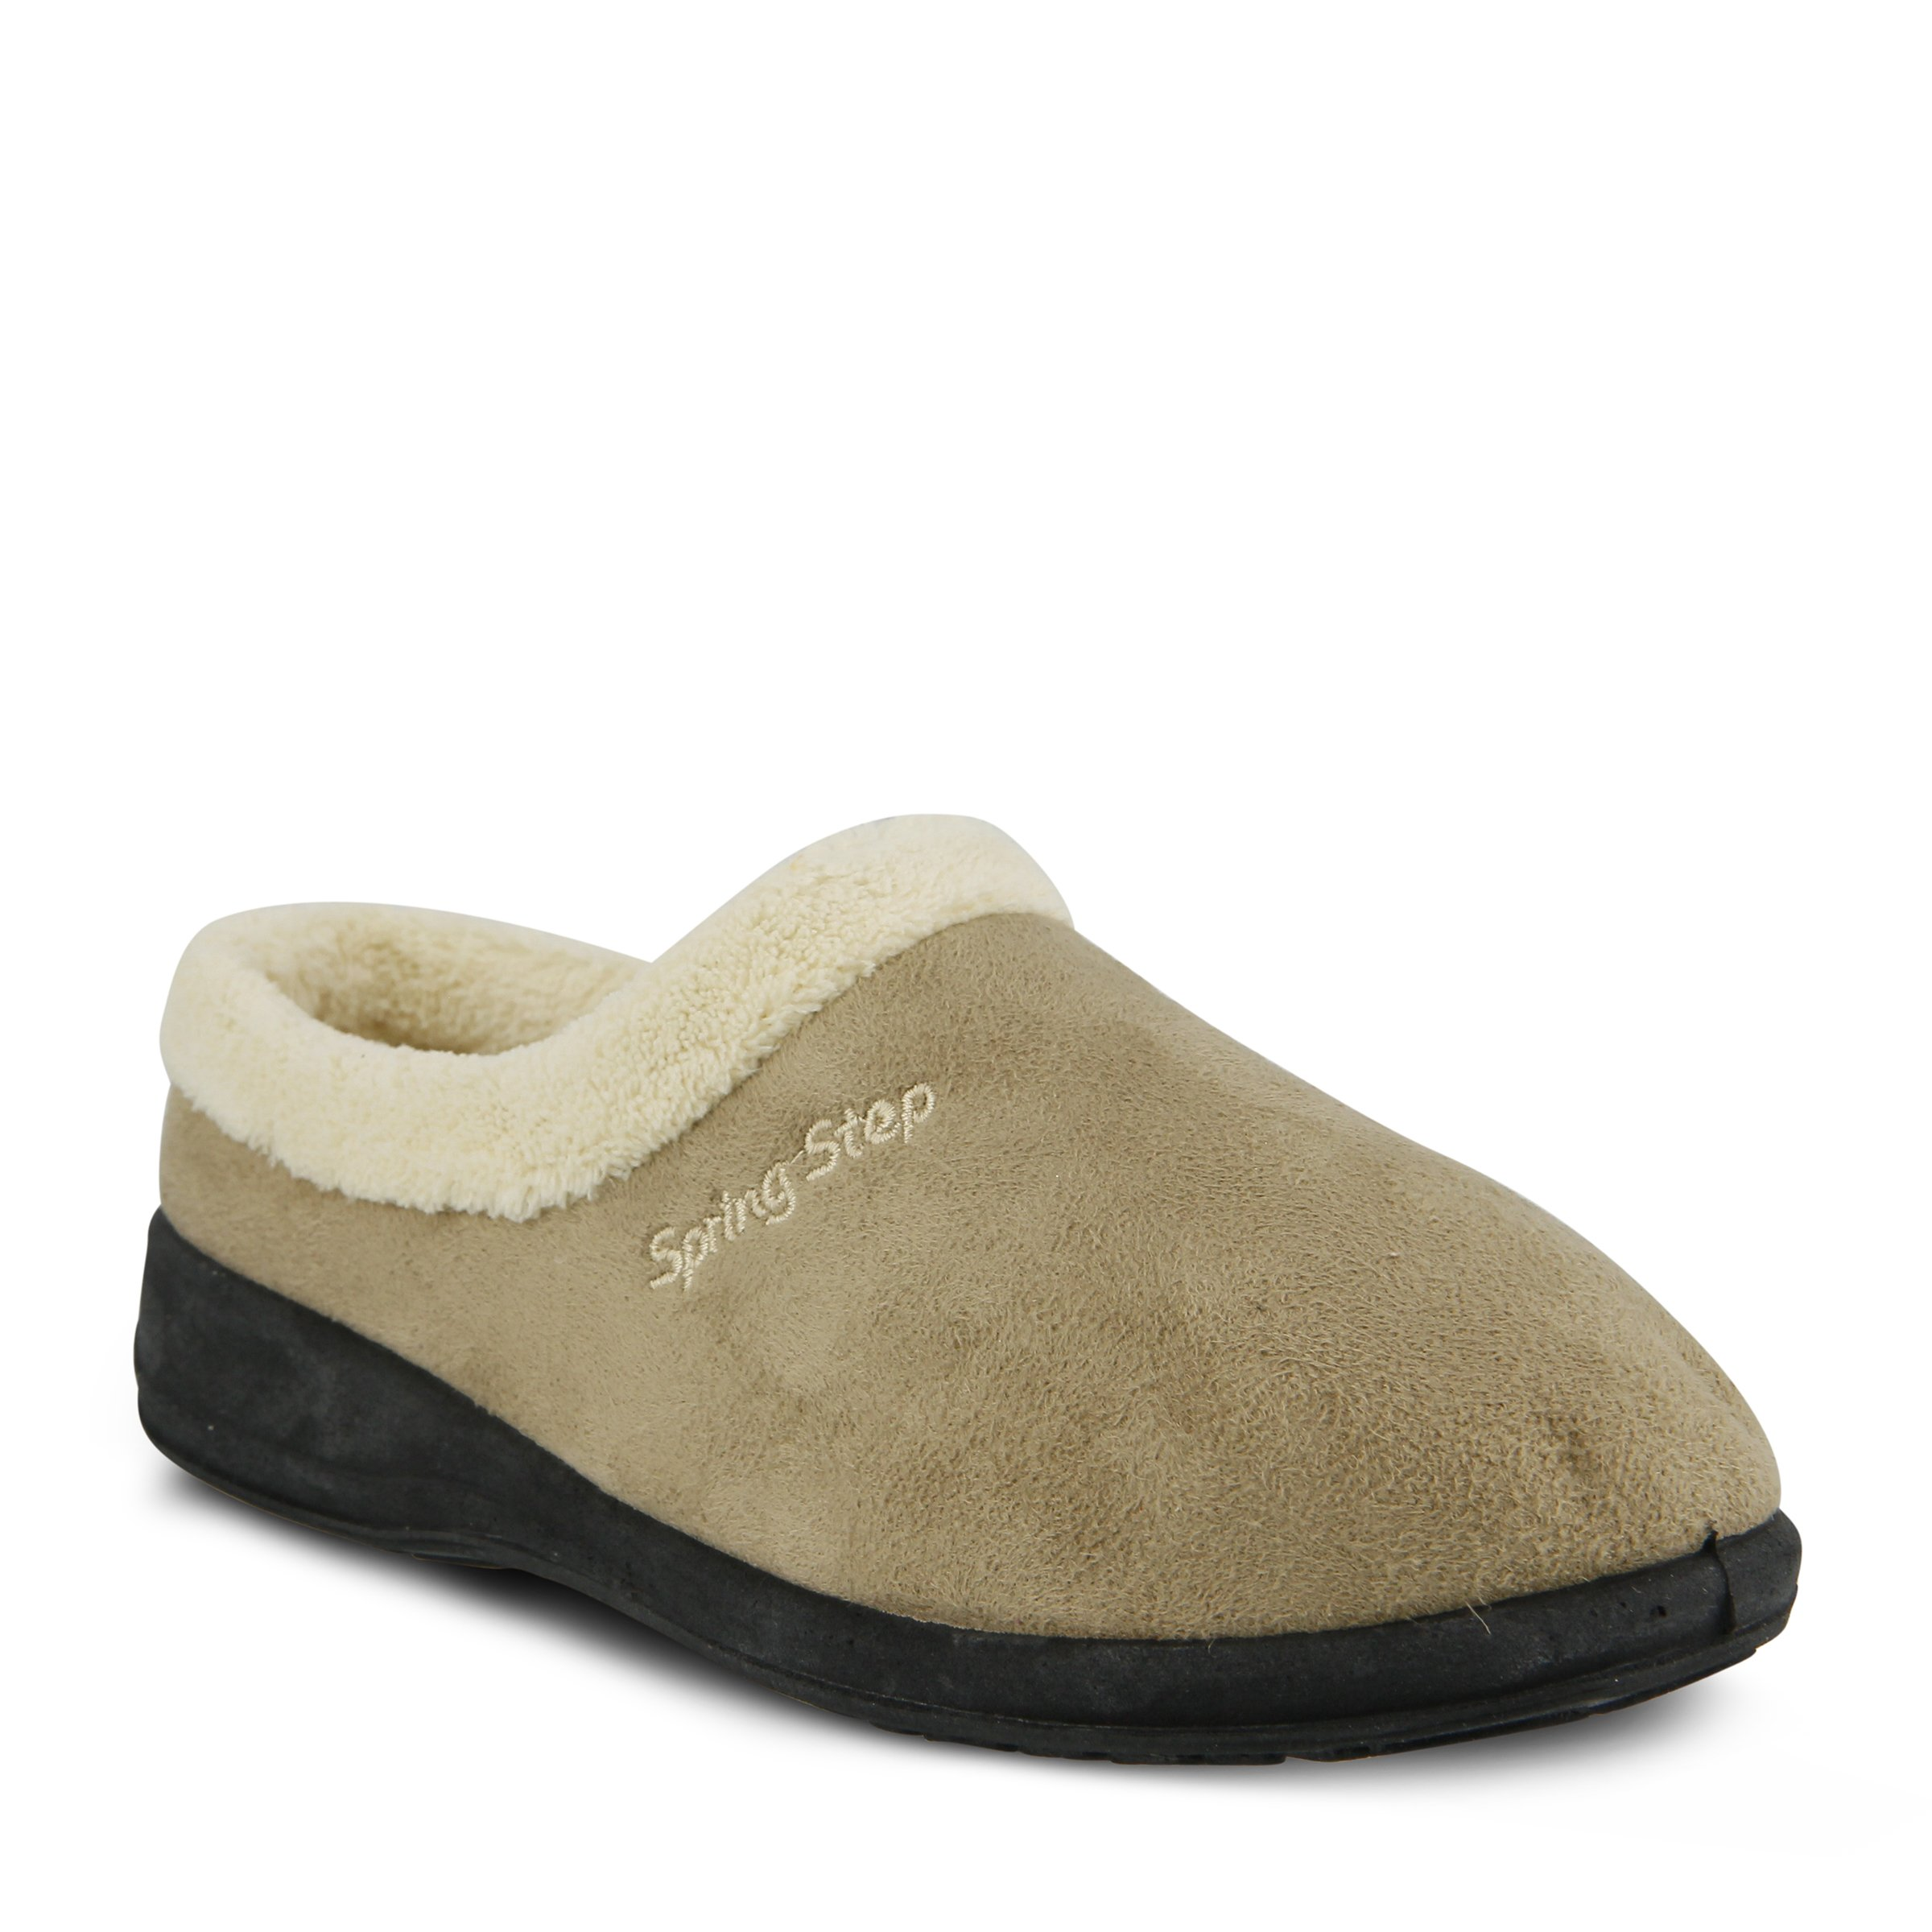 Spring Step Women's Ivana Slip On Slipper, Beige, 36 EU/5.5-6 M US